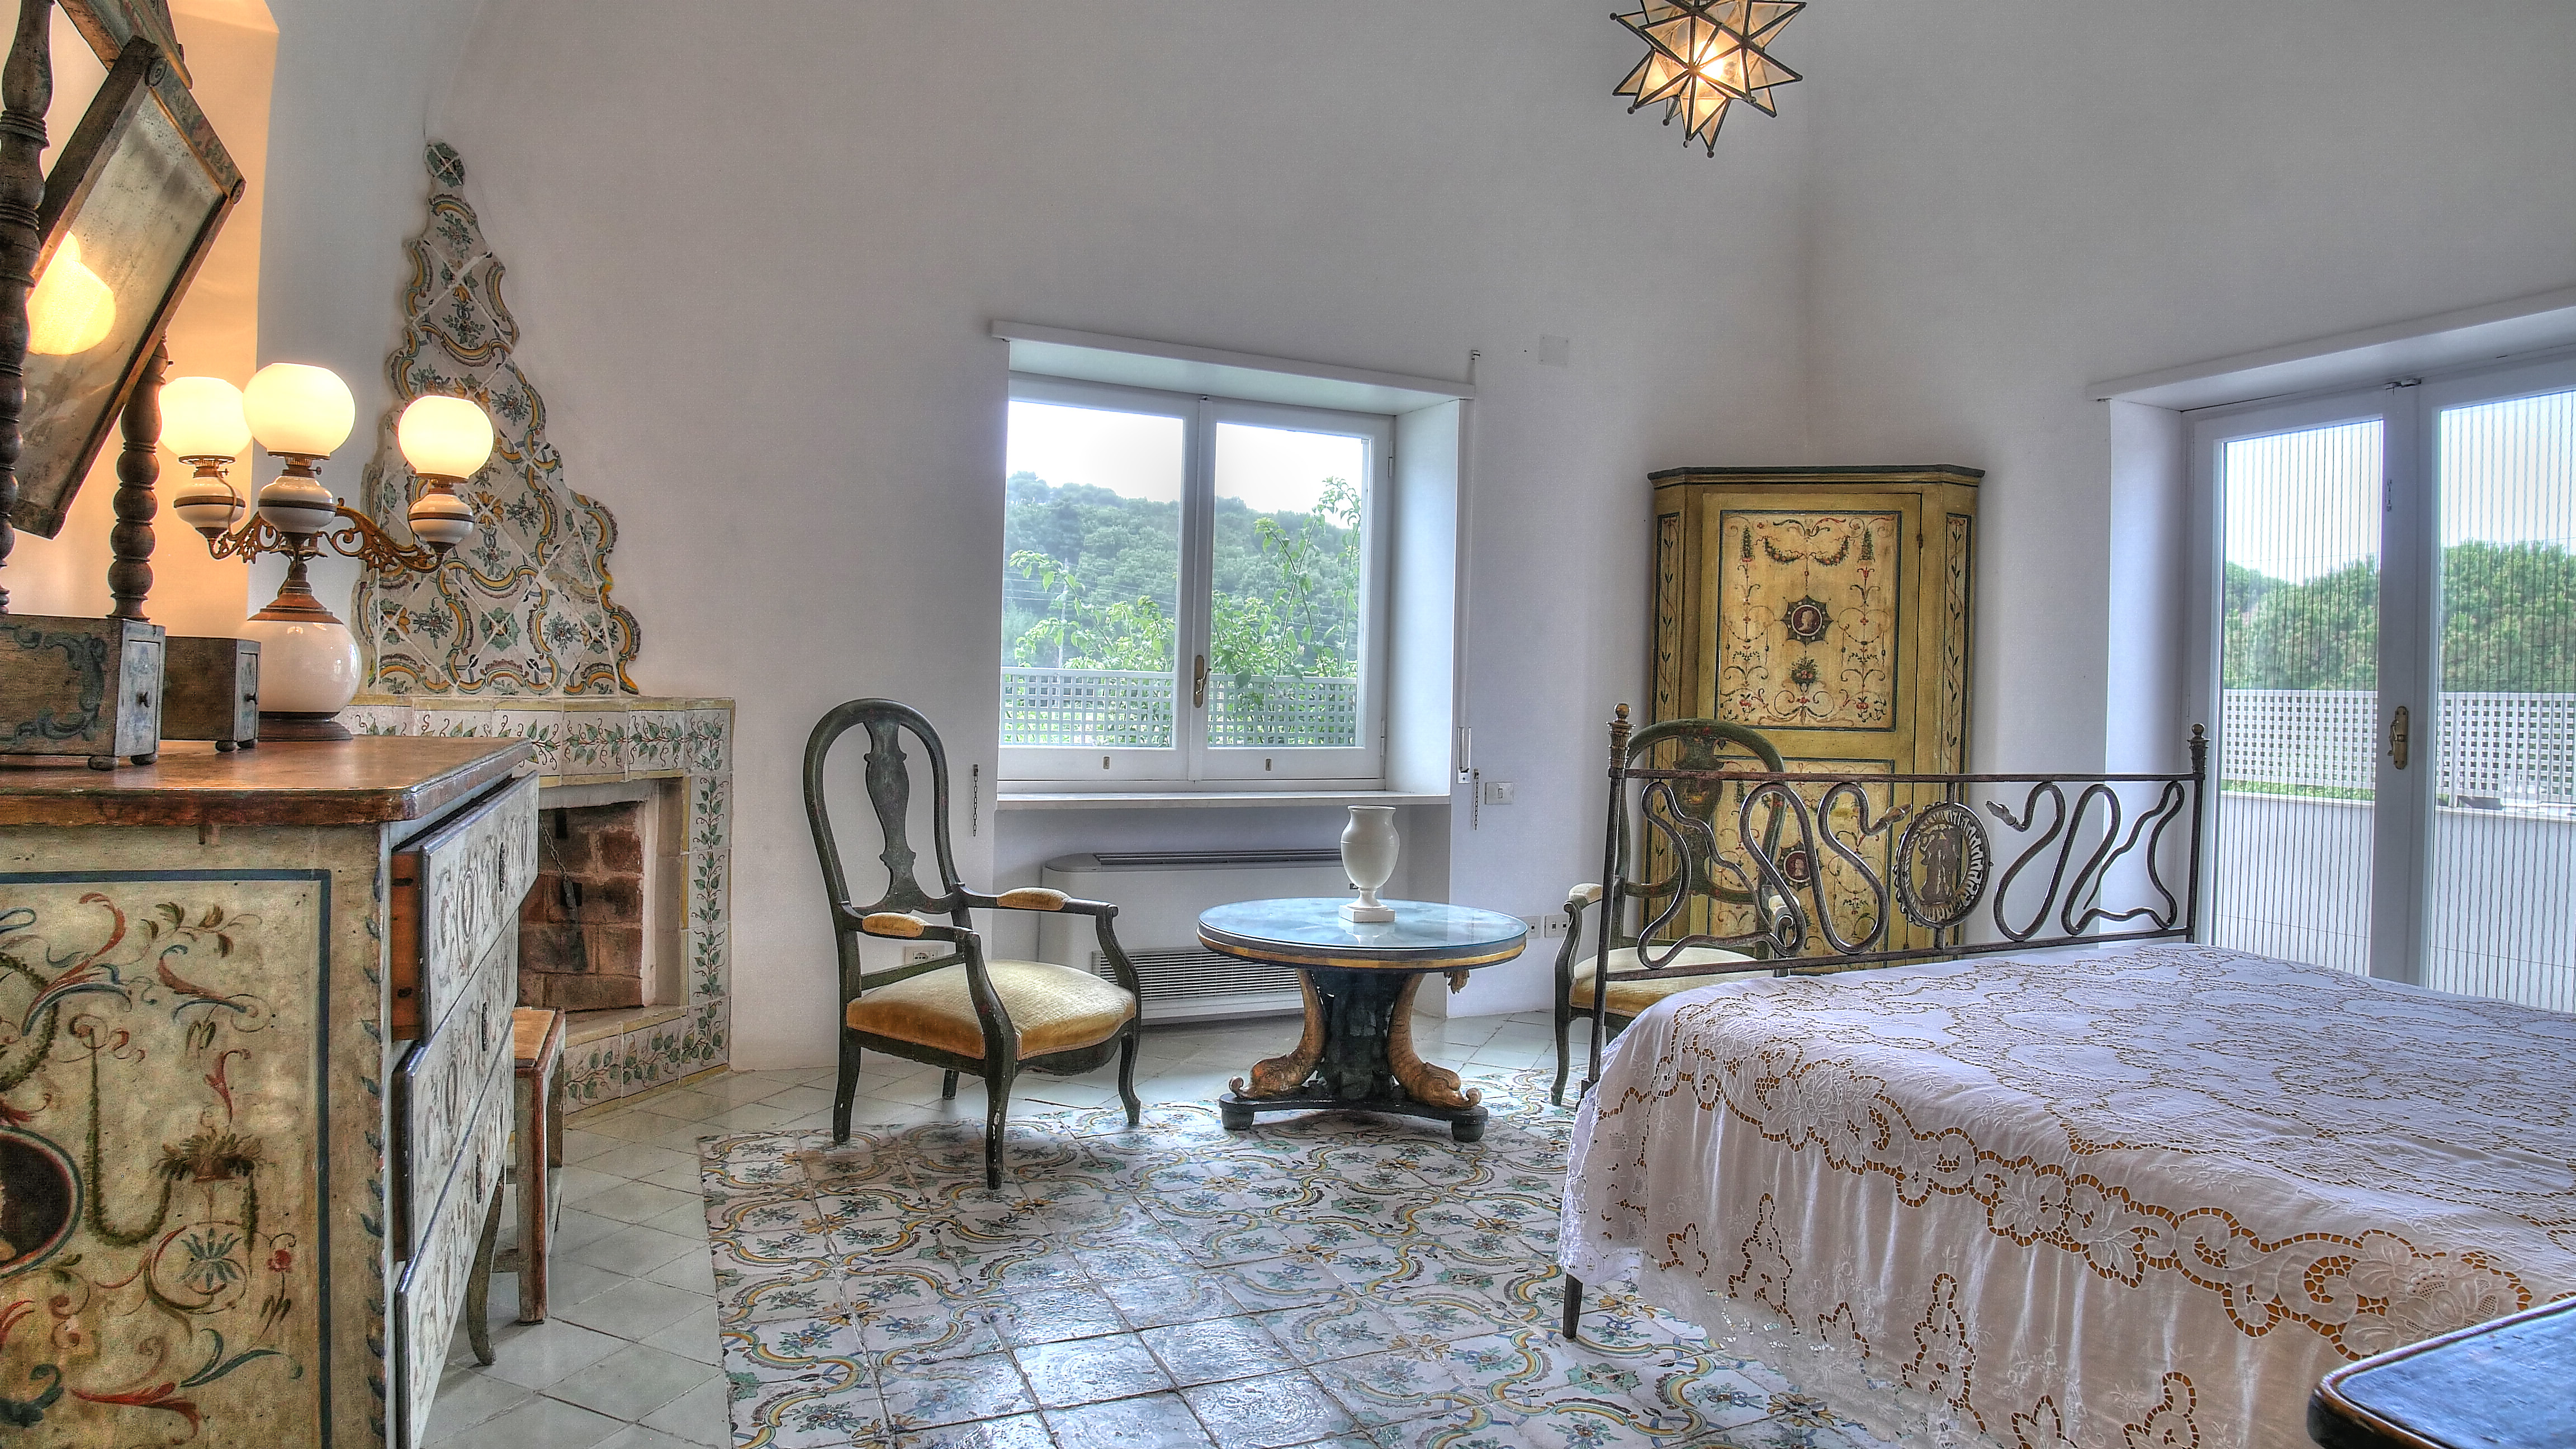 ISLAND OF CAPRI ITALY VILLA BEDROOM SUITES WITH FIREPLACE